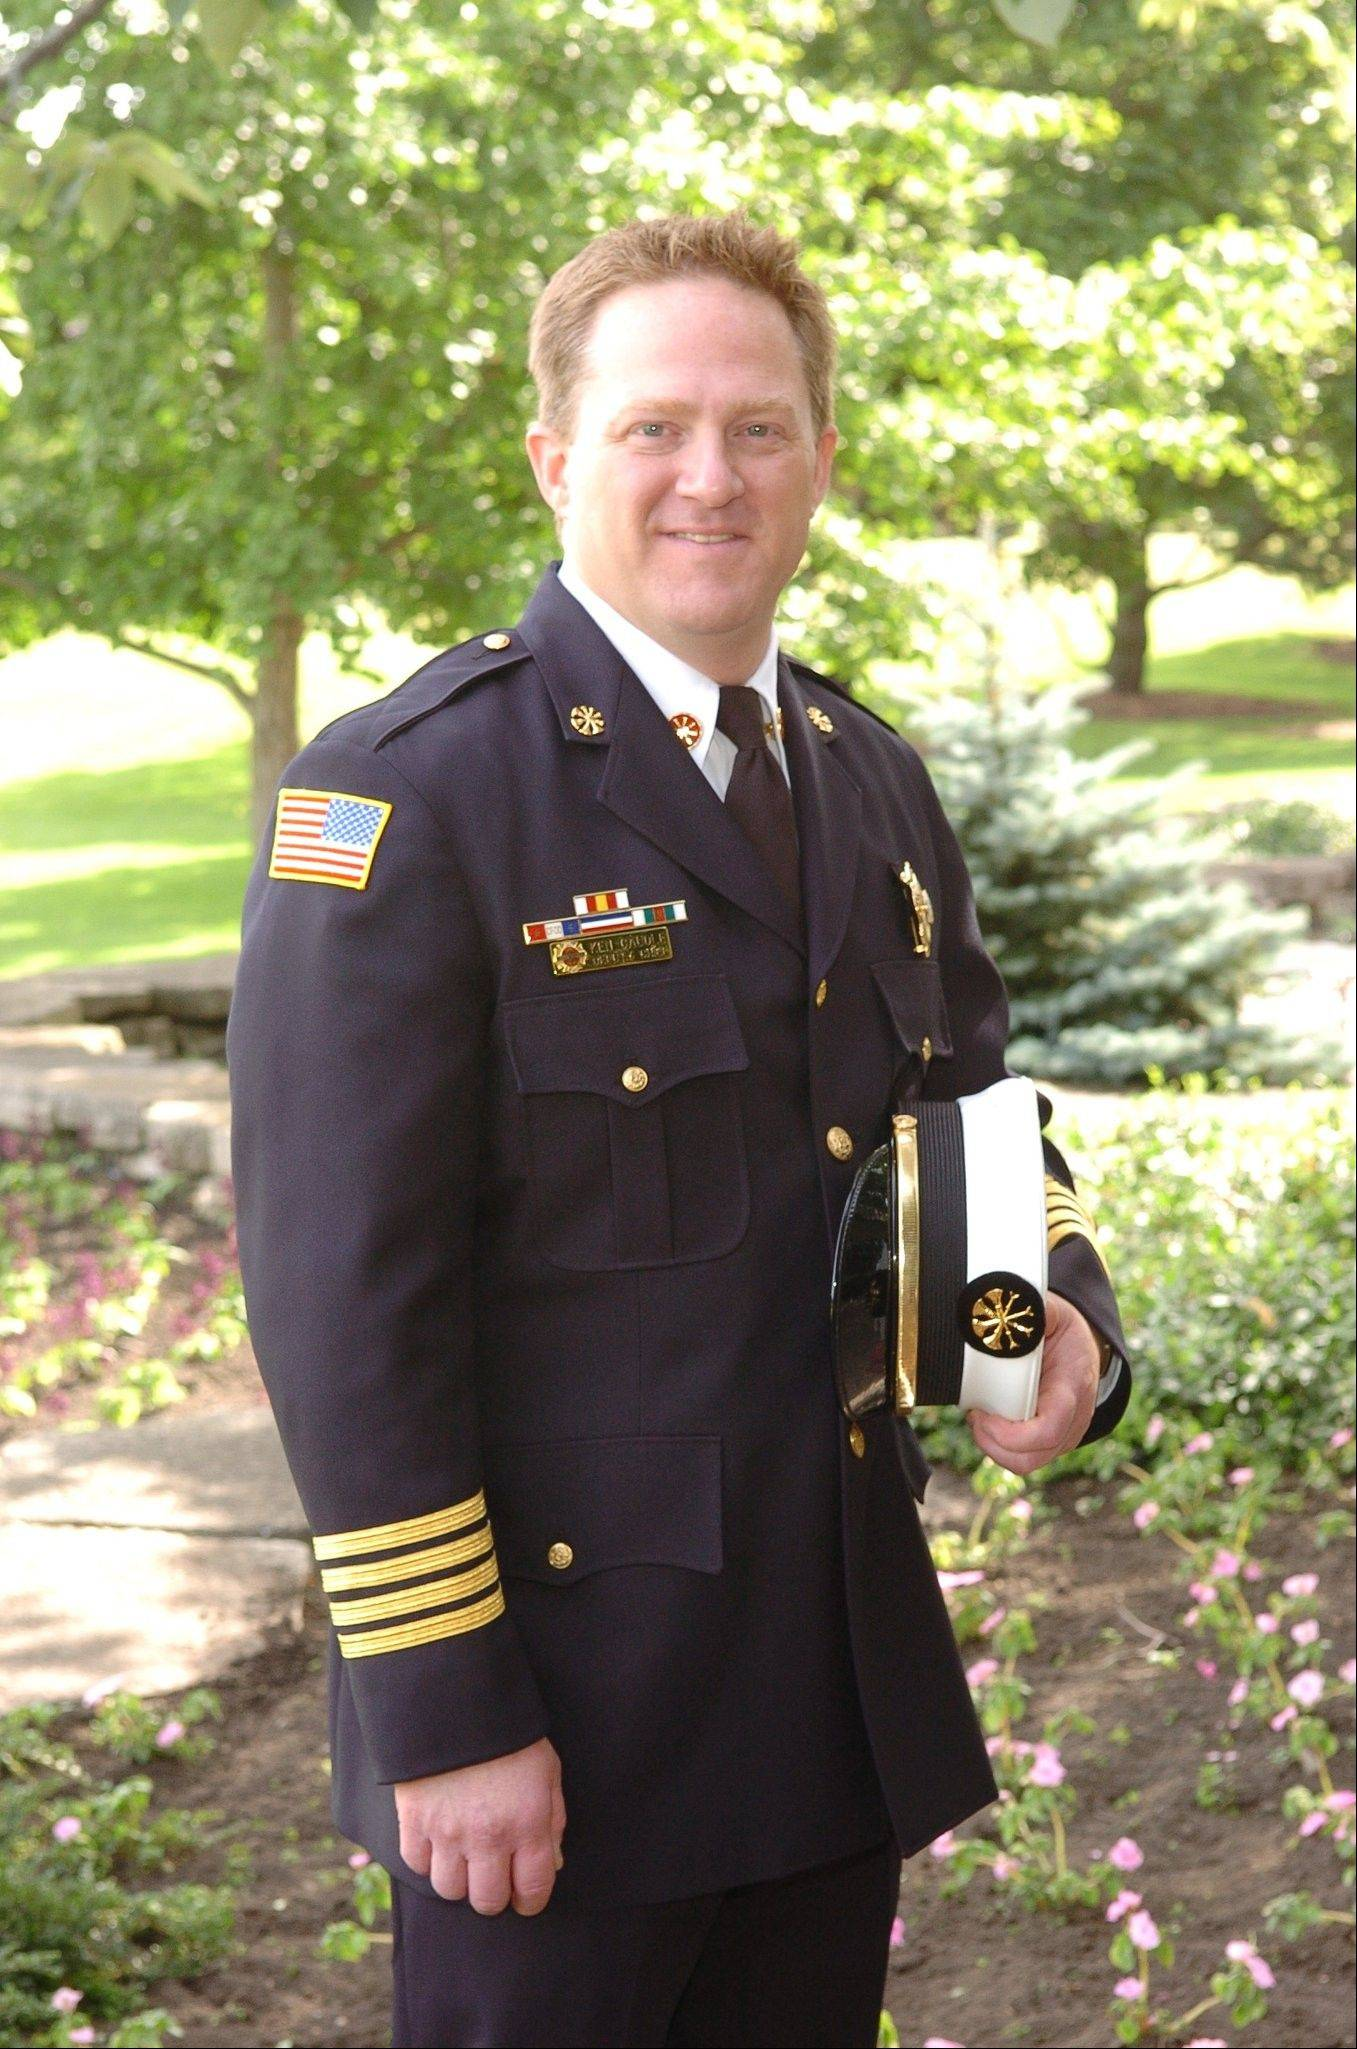 New fire chief to take reins in Huntley